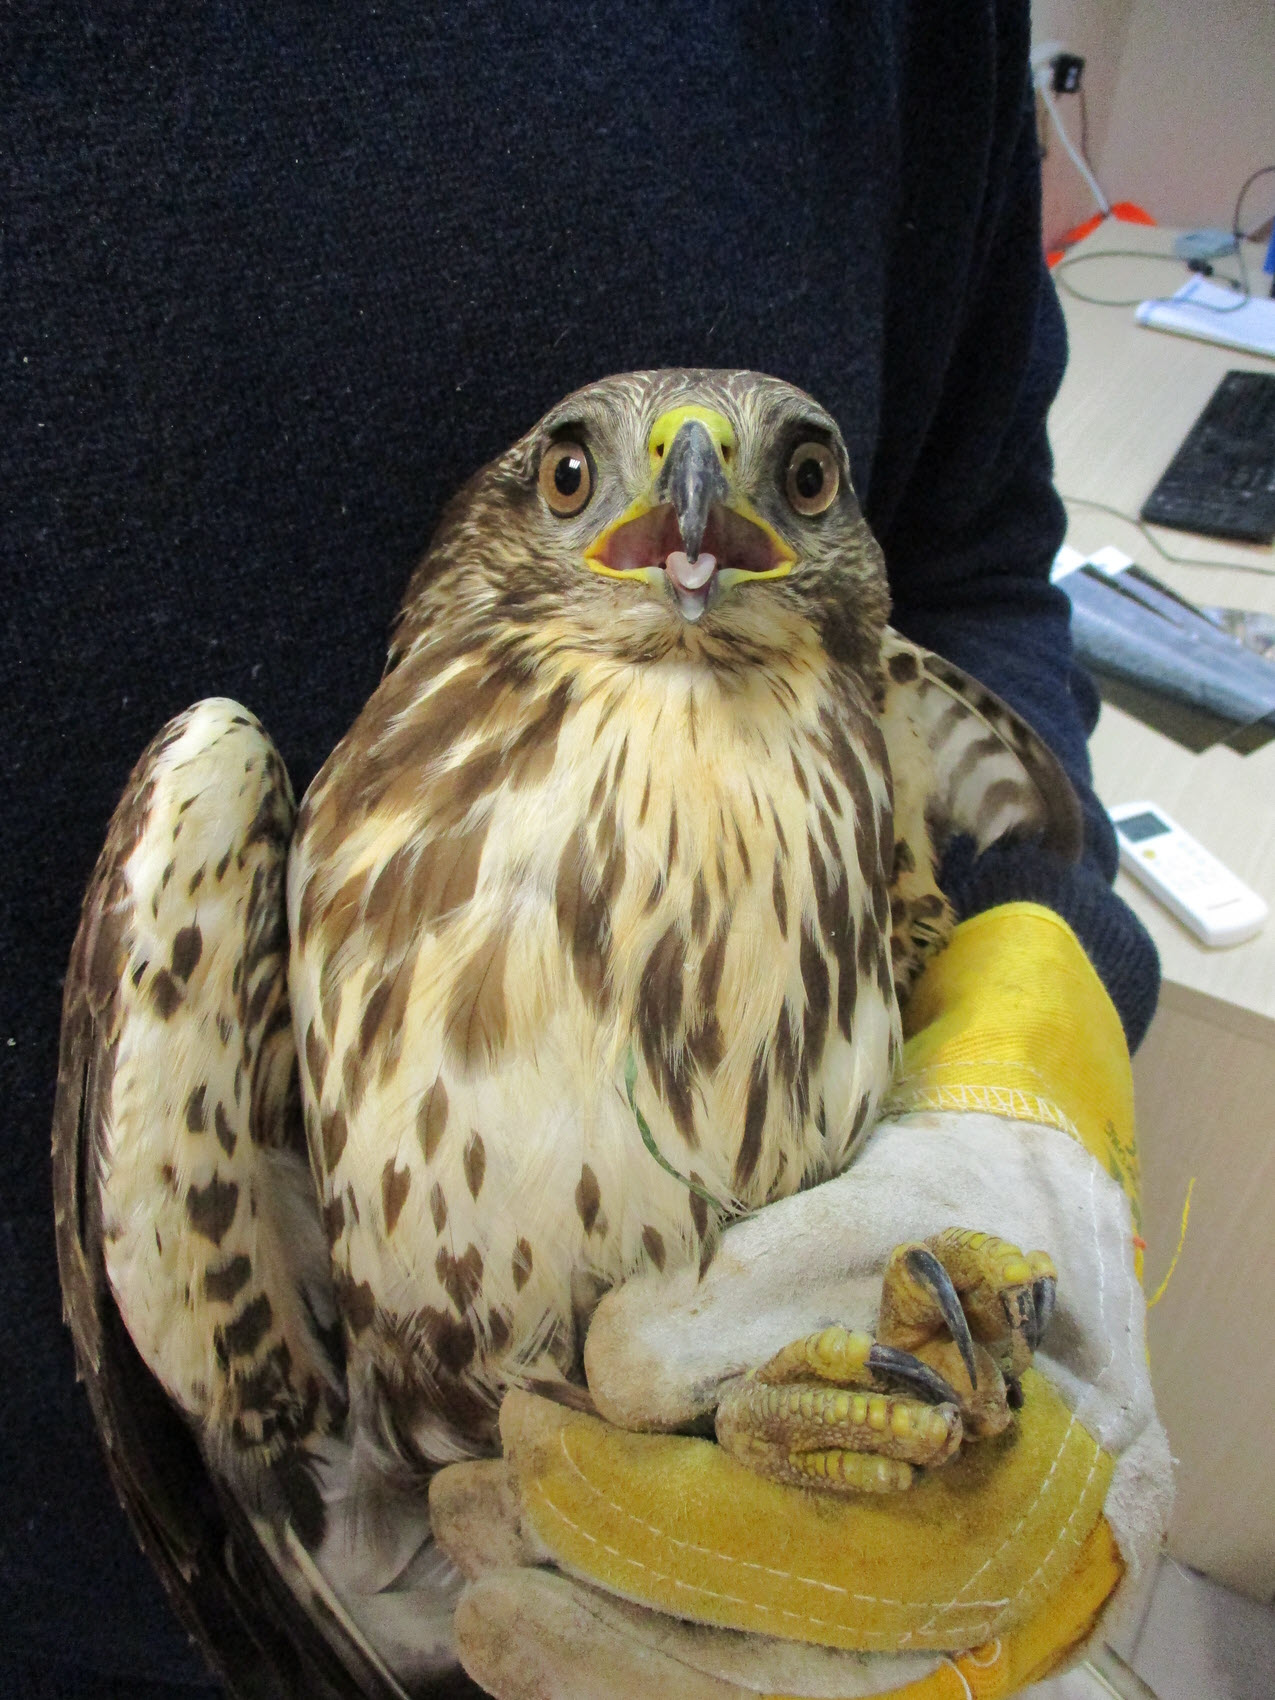 tap rescued buzzard